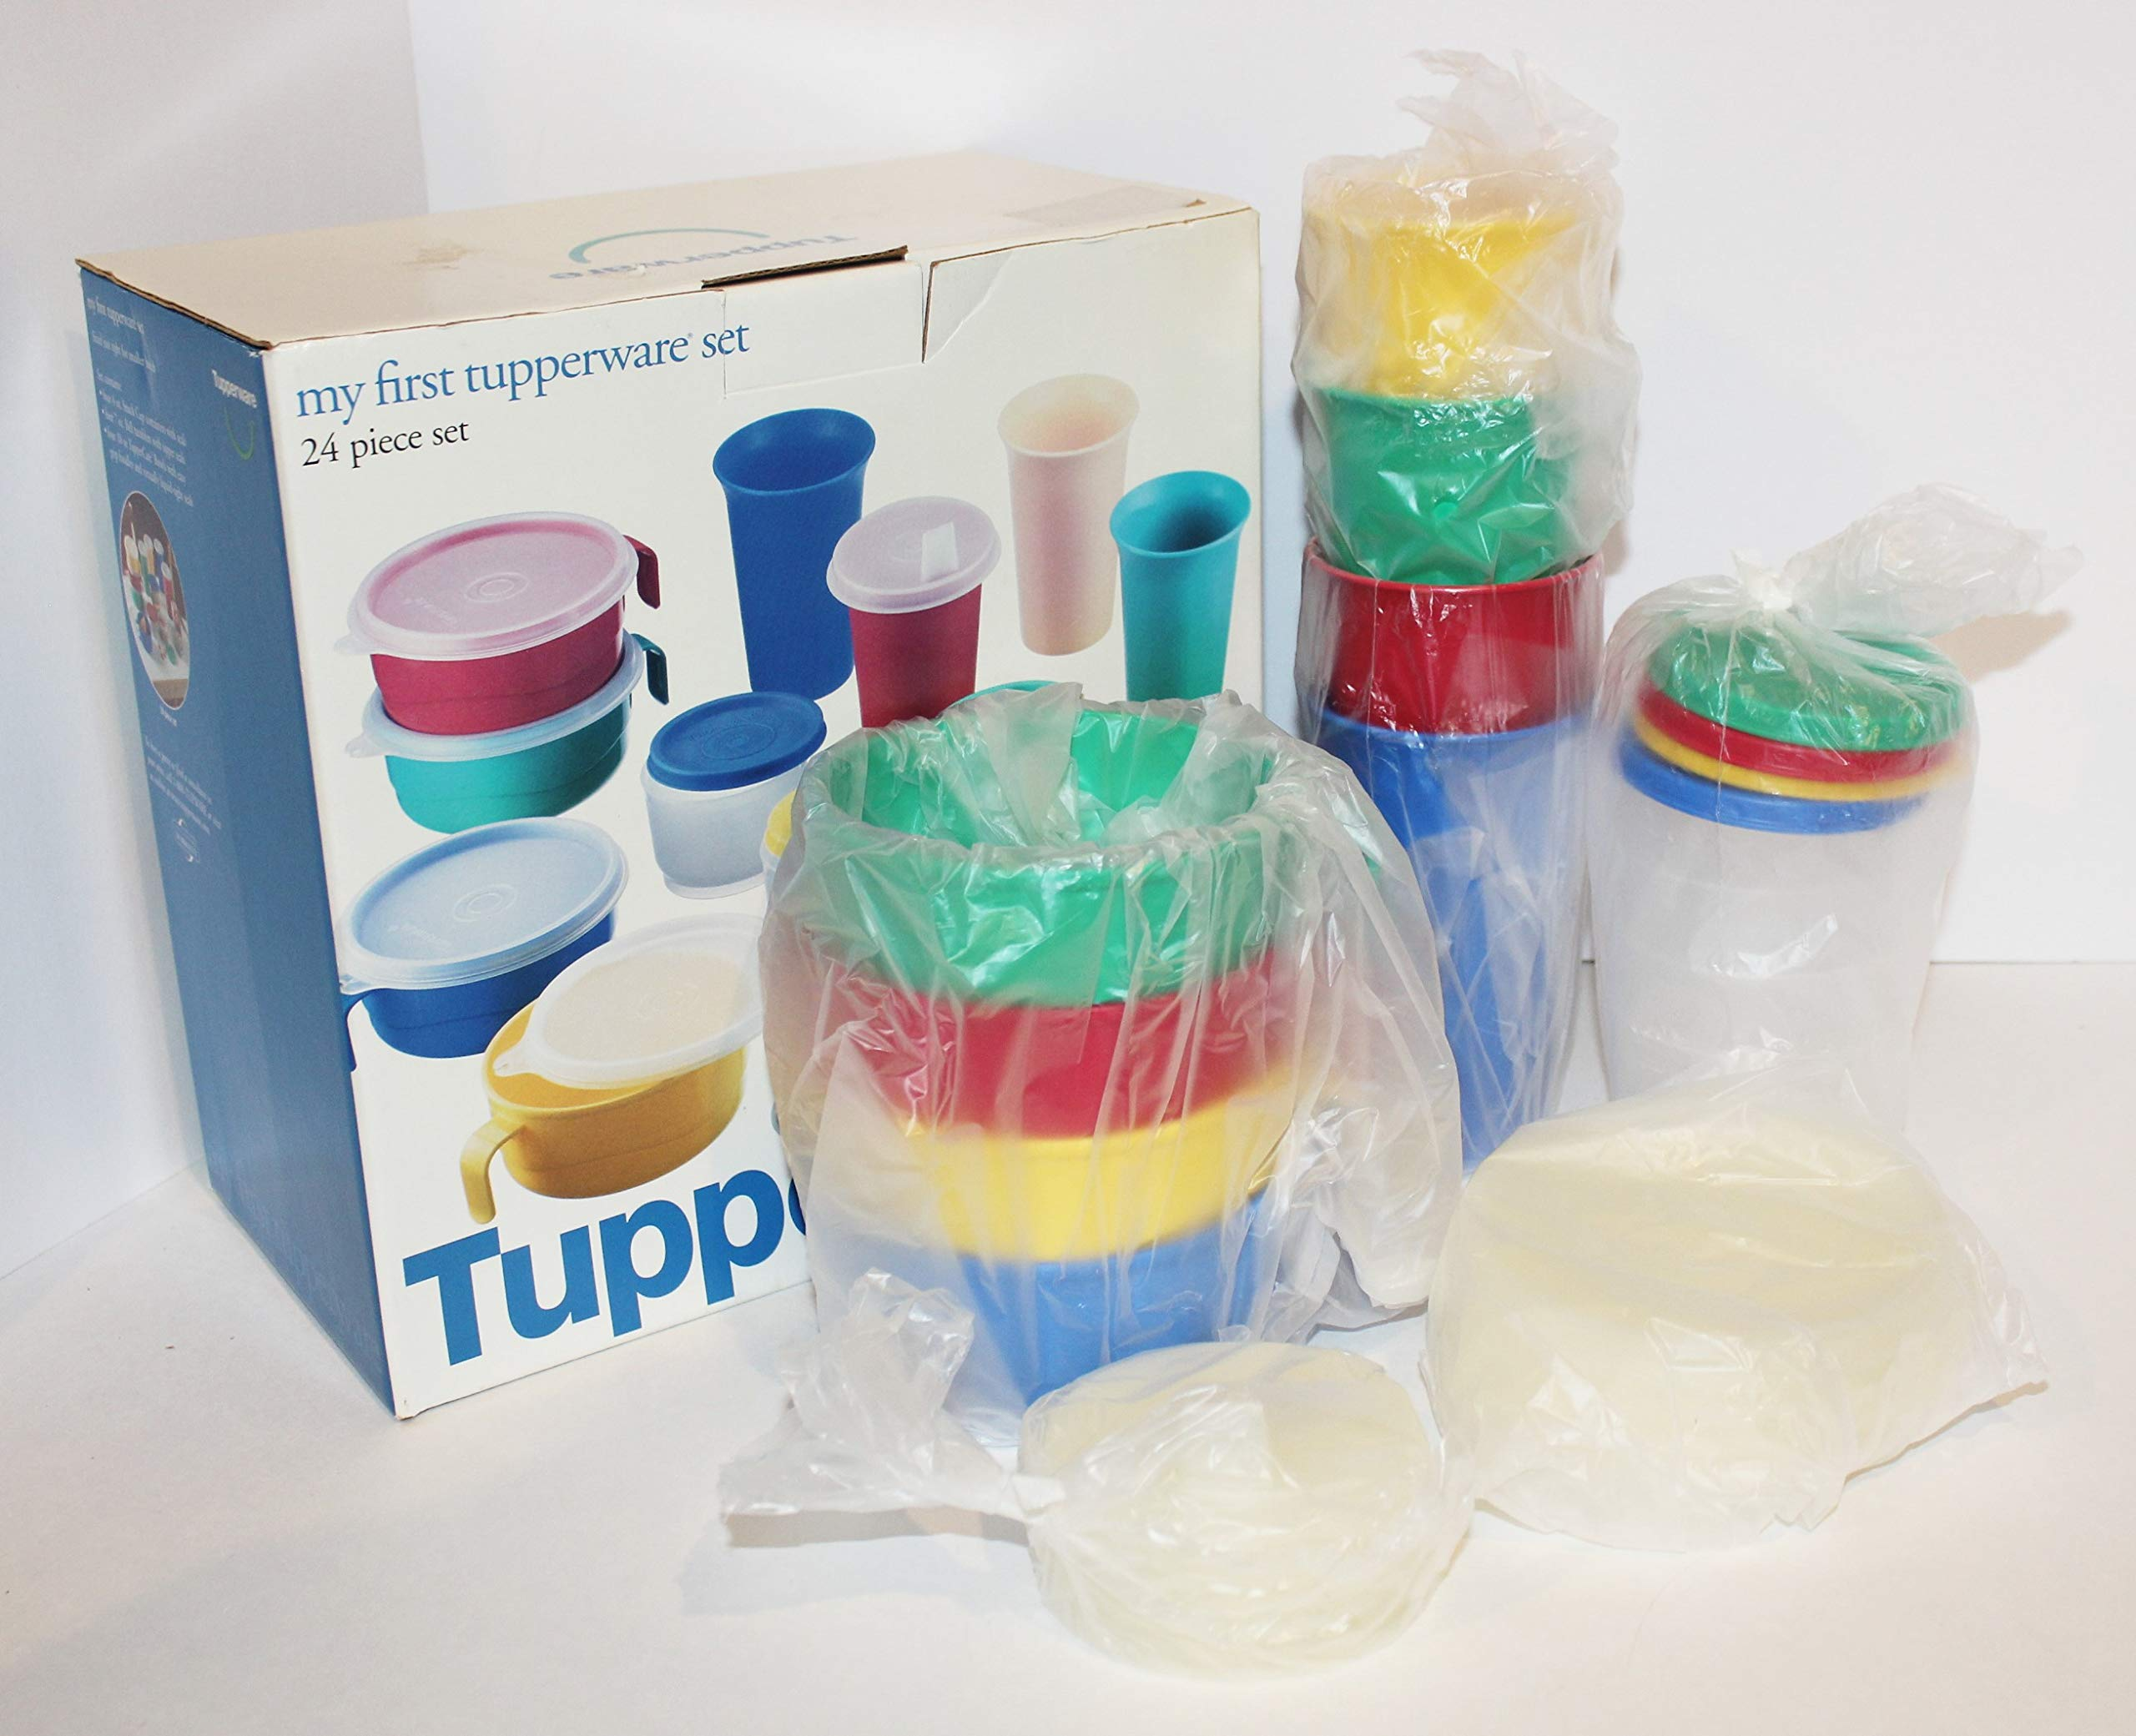 My First Tupperware 24 Piece Set With Bell Tumblers, Flat Sipper Seals, Handled Bowls and Snack Cups